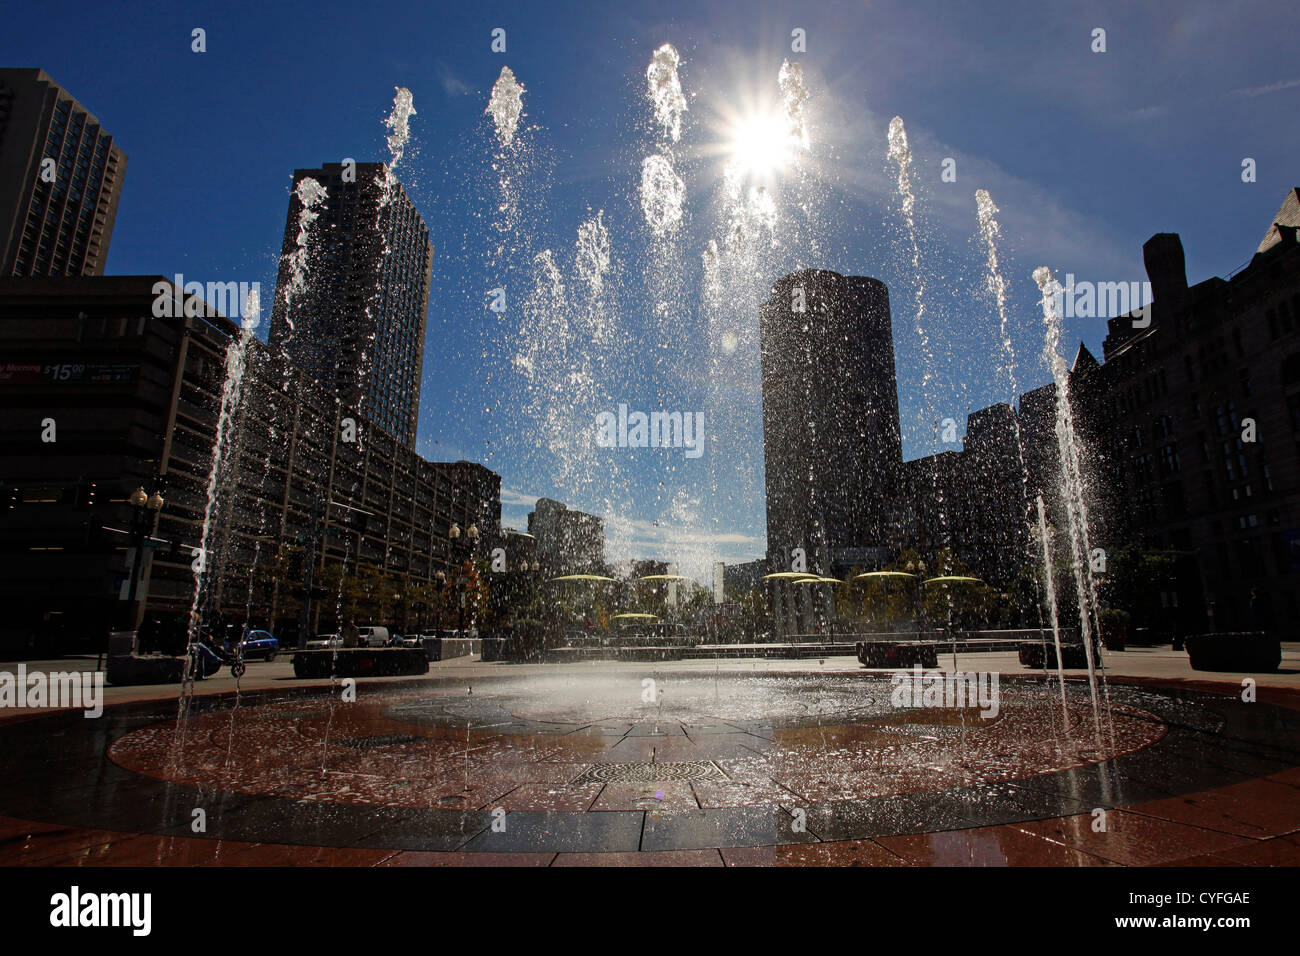 Jets of water at Rings Fountain in the Wharf District of Boston, Massachusetts, America - Stock Image